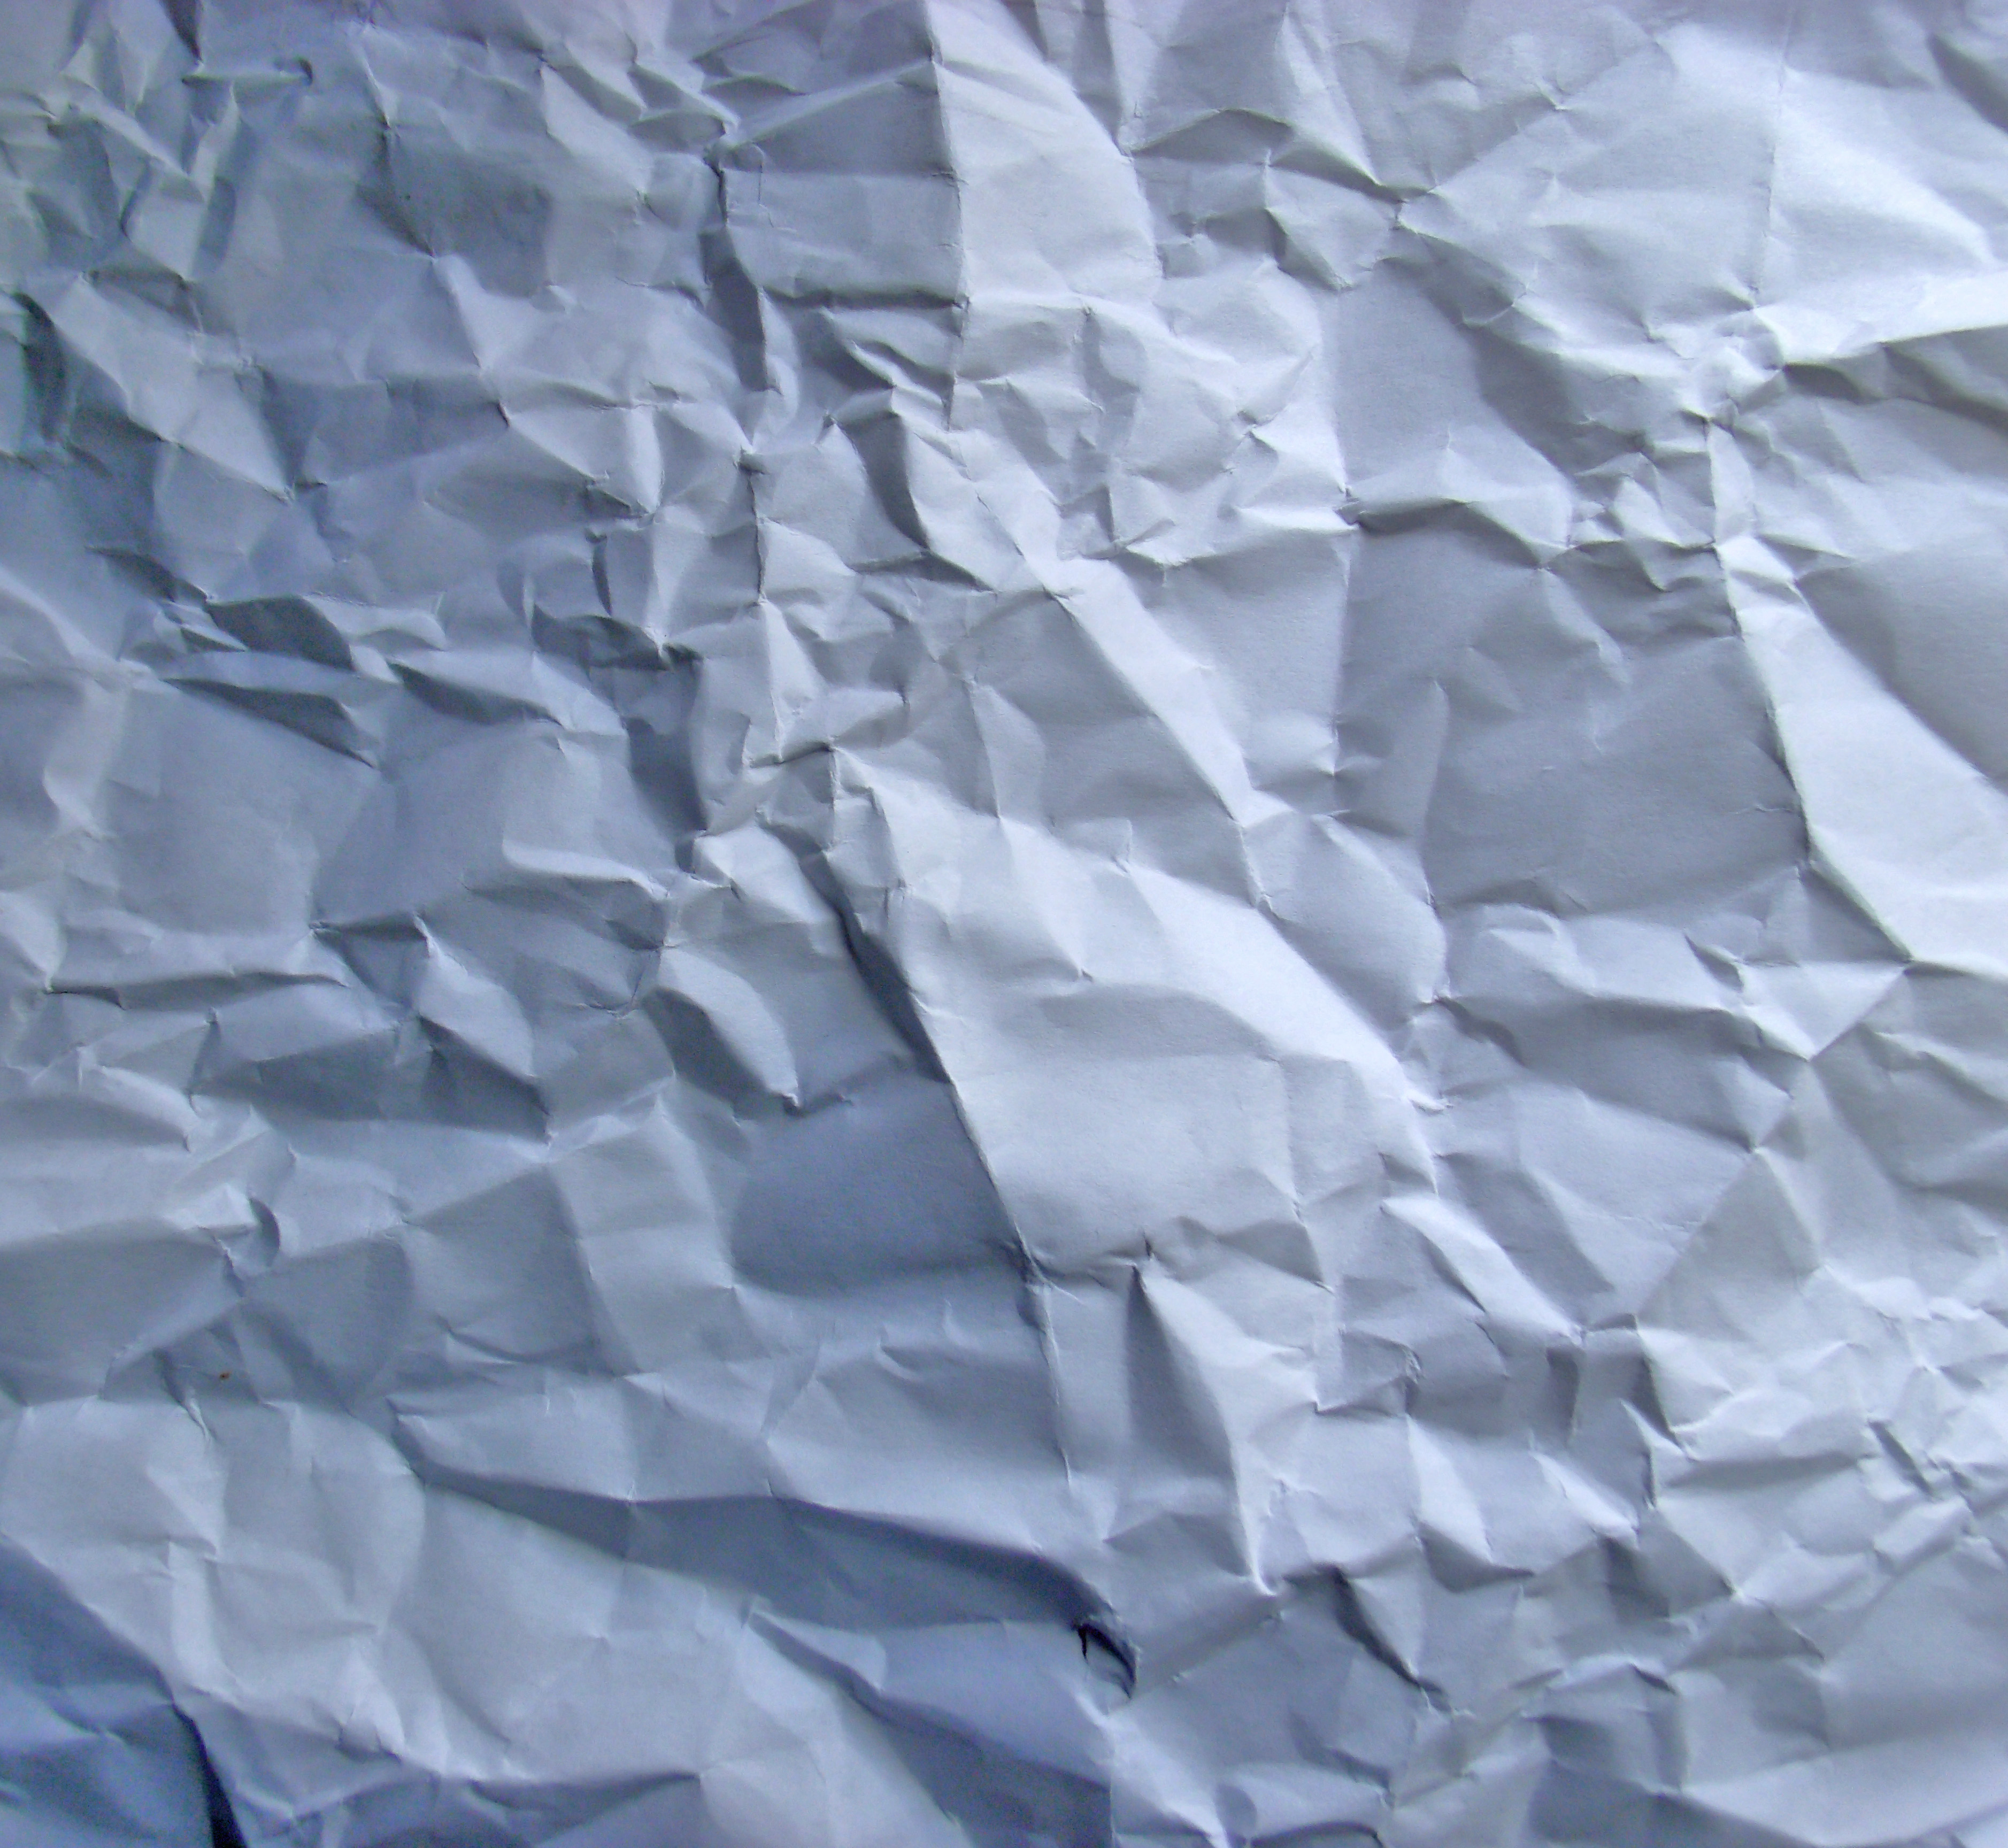 Wrinkled paper texture photo